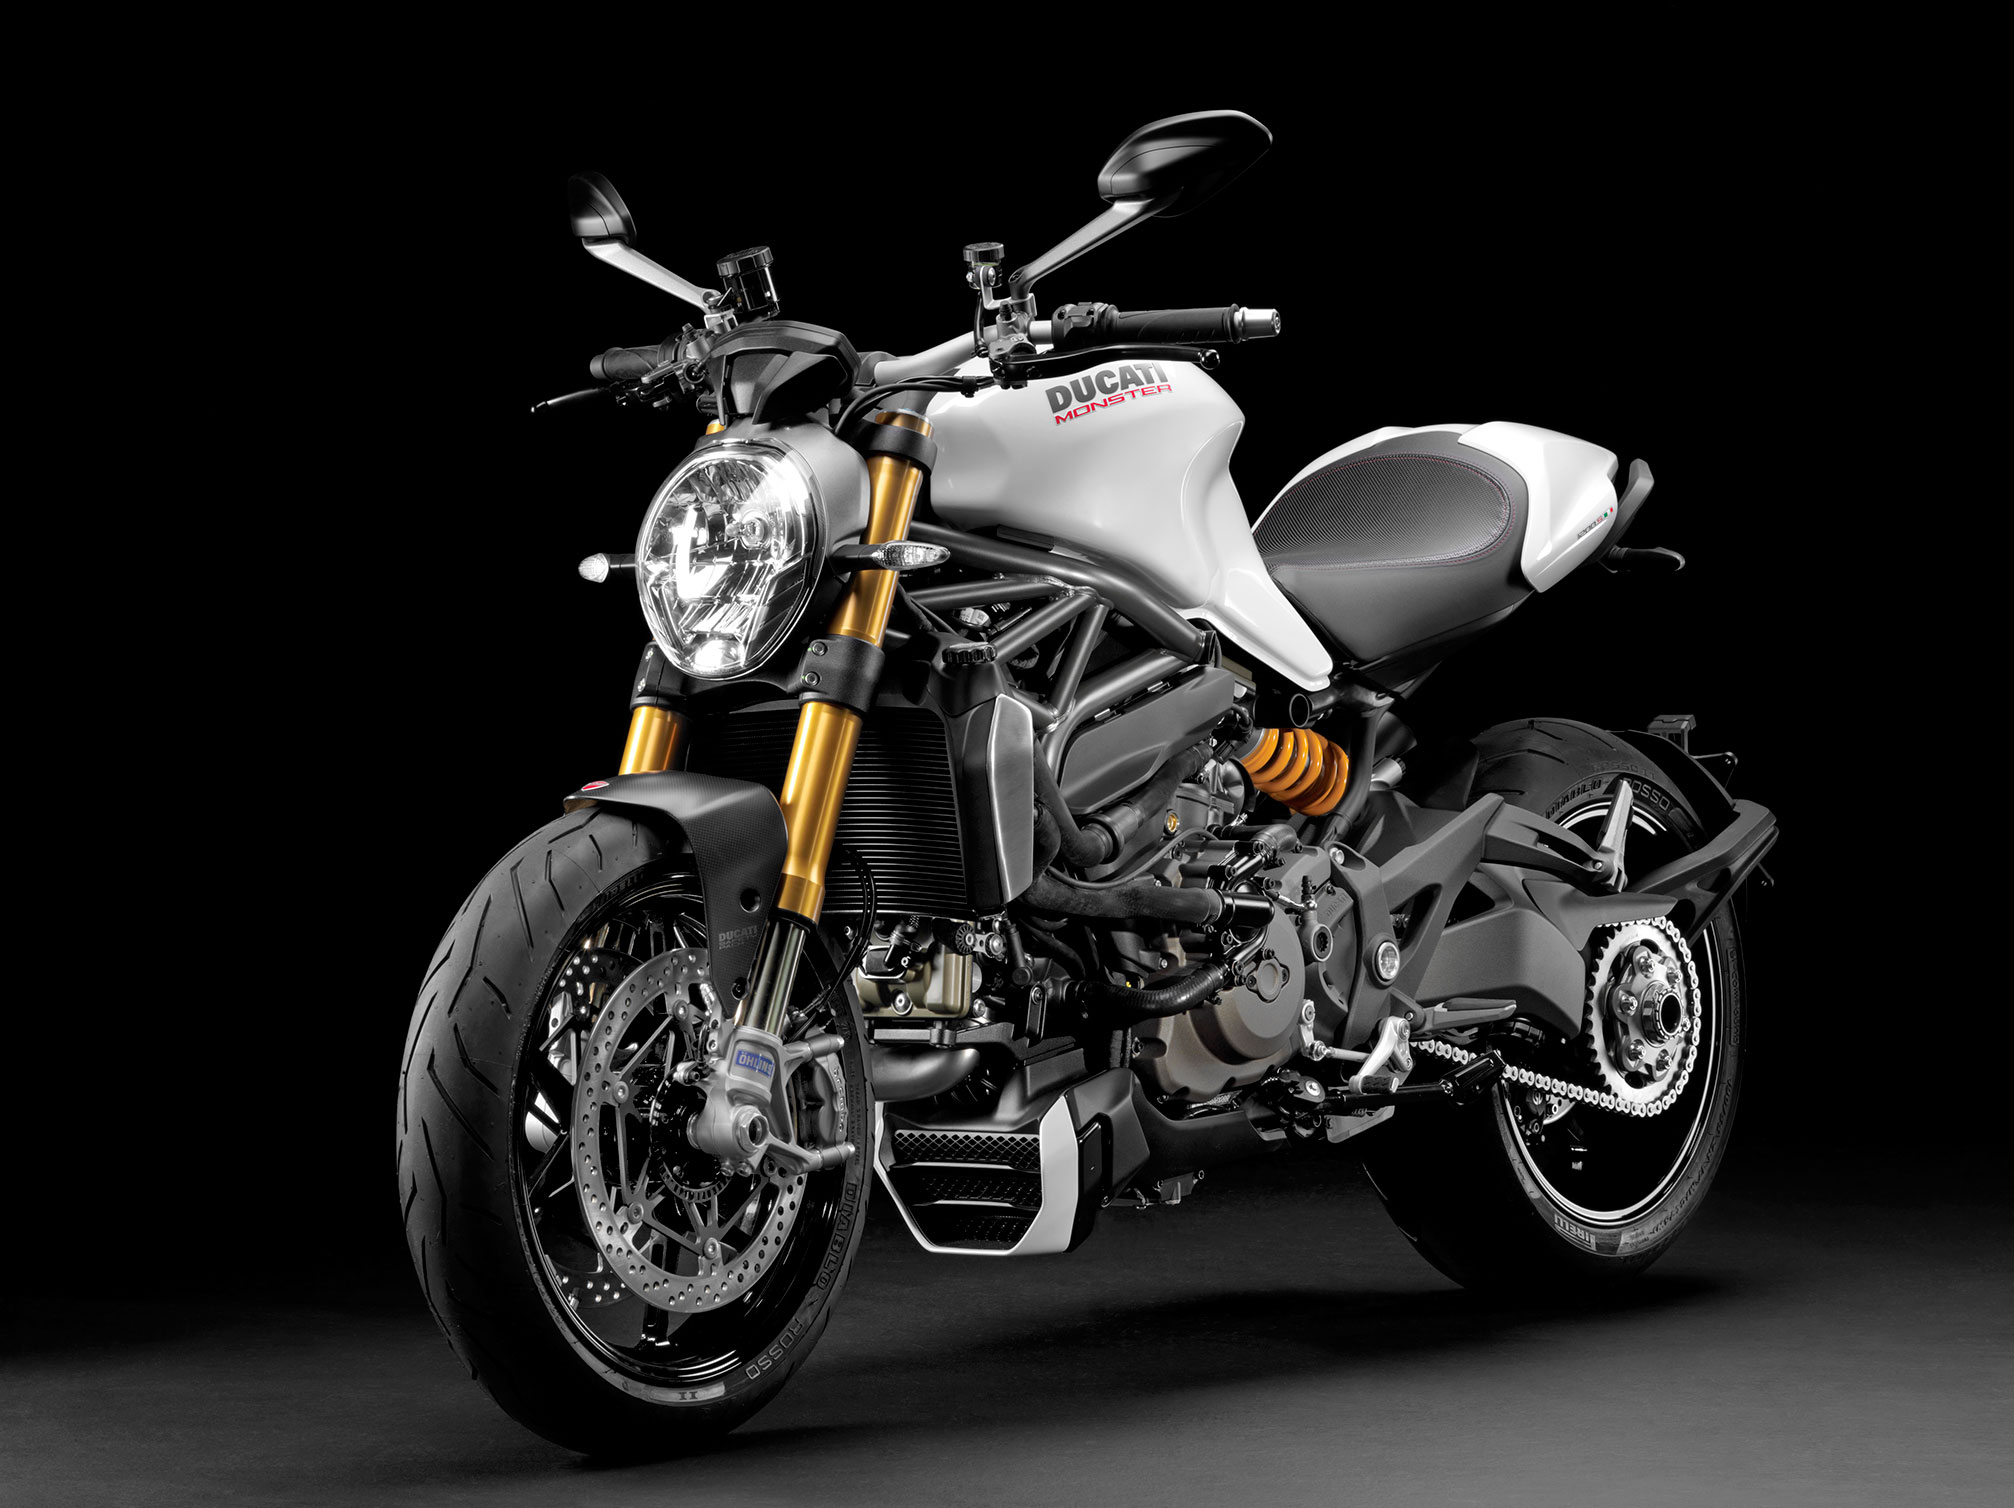 2014 ducati monster 1200s review